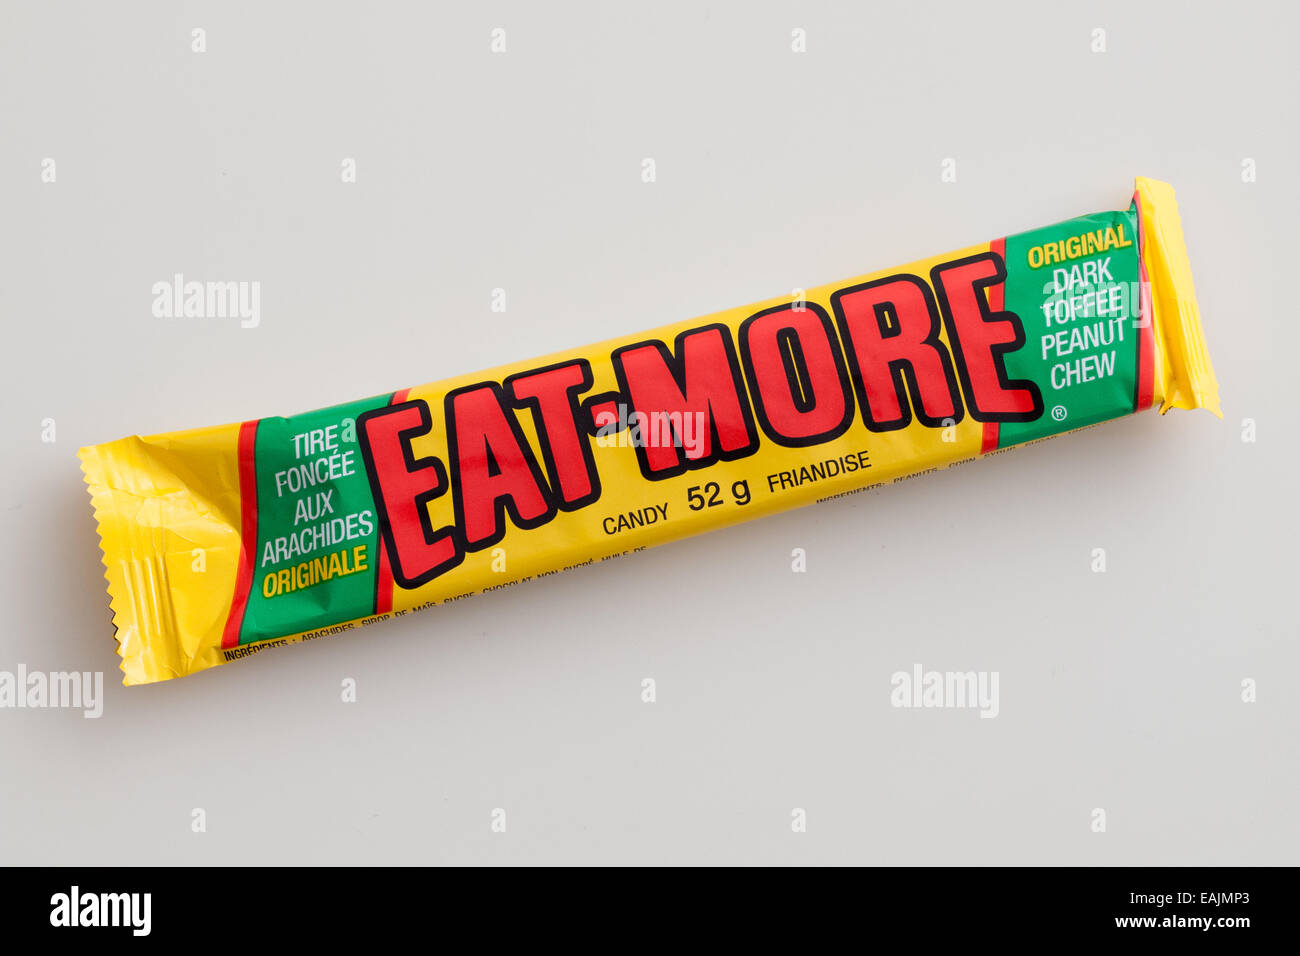 An Eat-More candy bar, made by The Hershey Company. - Stock Image